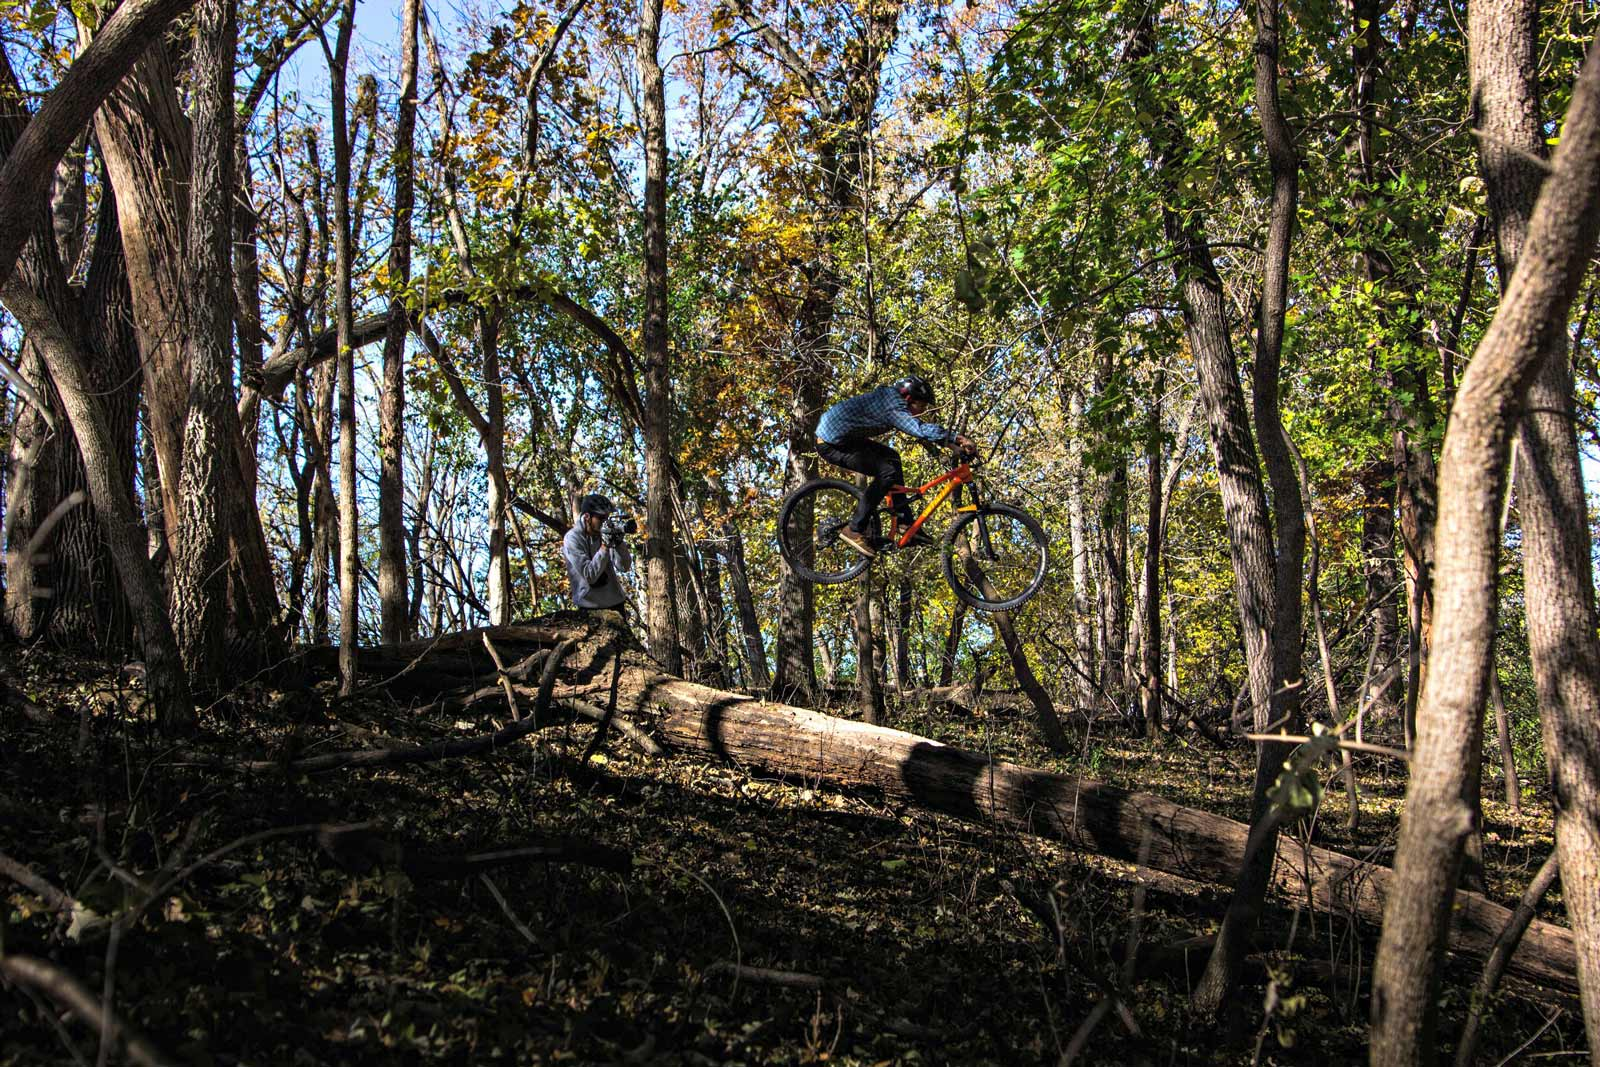 Mountain Biking Genesis: How to Get Serious about Mountain Biking like I Did